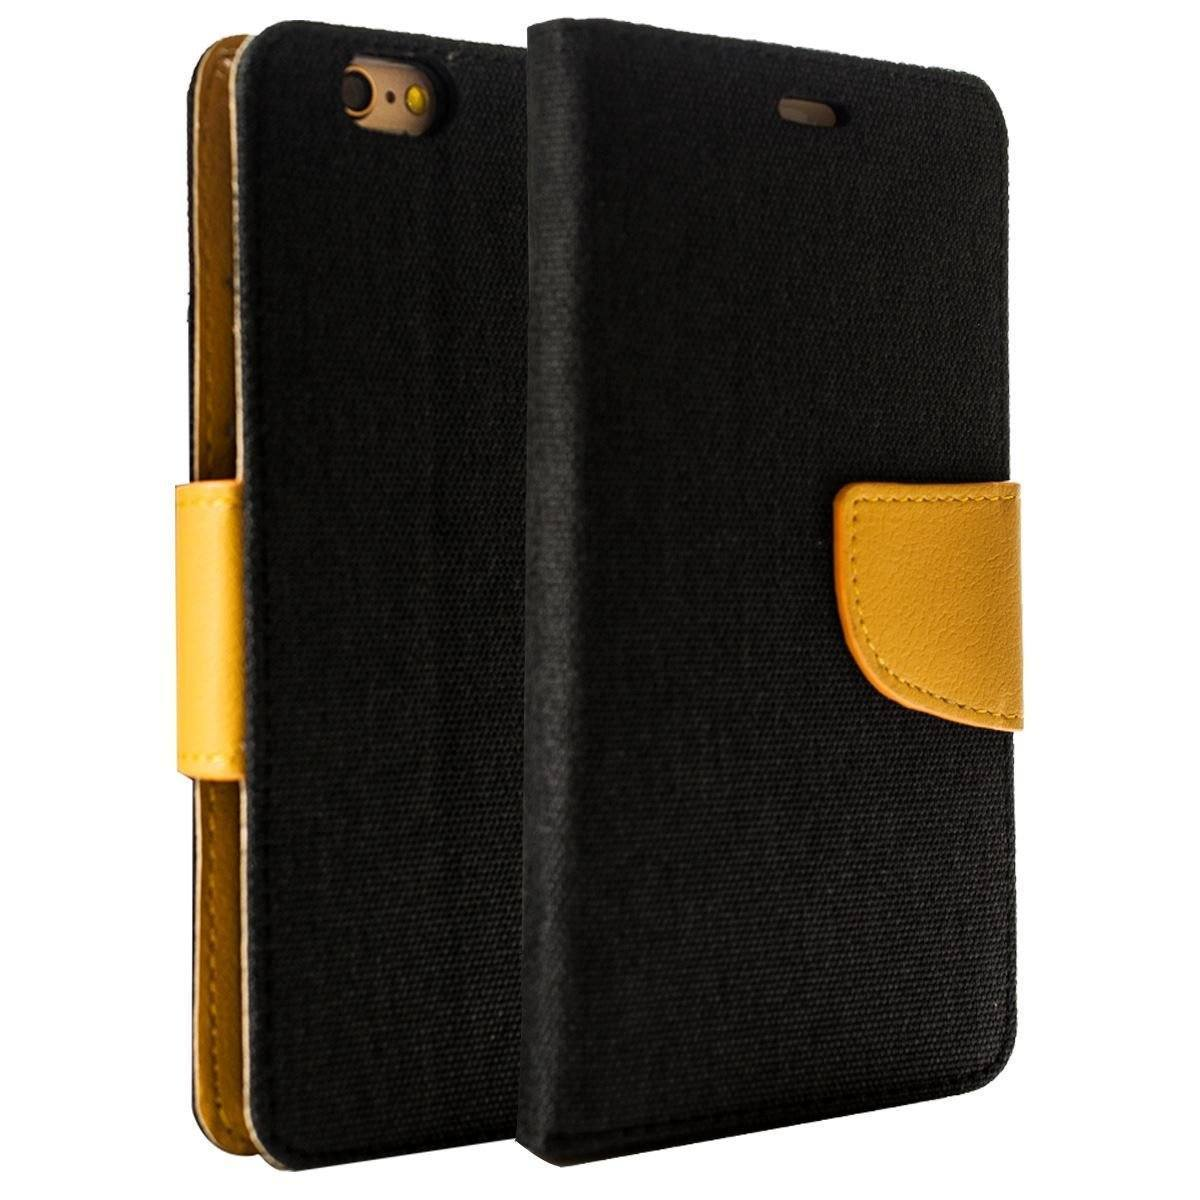 Wing Wallet Case for iPhone 6 - Black